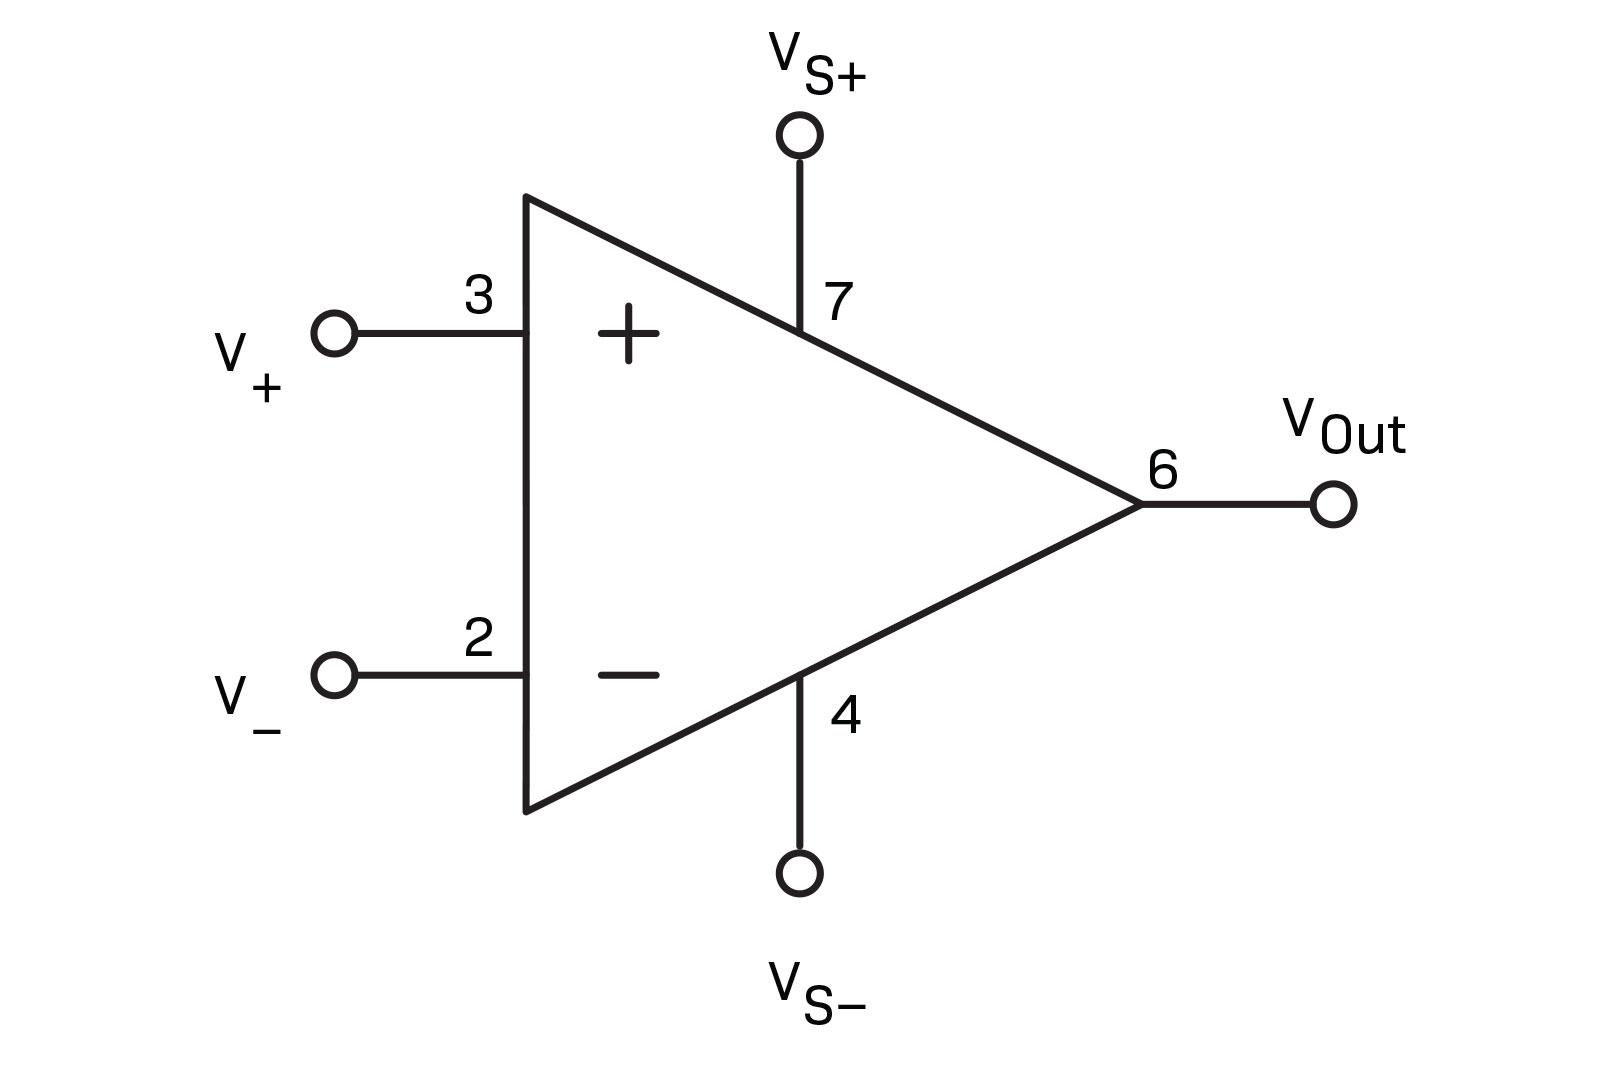 Operational Amplifiers Diyode Magazine Alternate Positivevoltage Switching Regulator Circuit Diagram Pin 7 Is For The Positive Voltage From Power Supply And 4 Negative Can Be Bipolar Meaning It Will Run